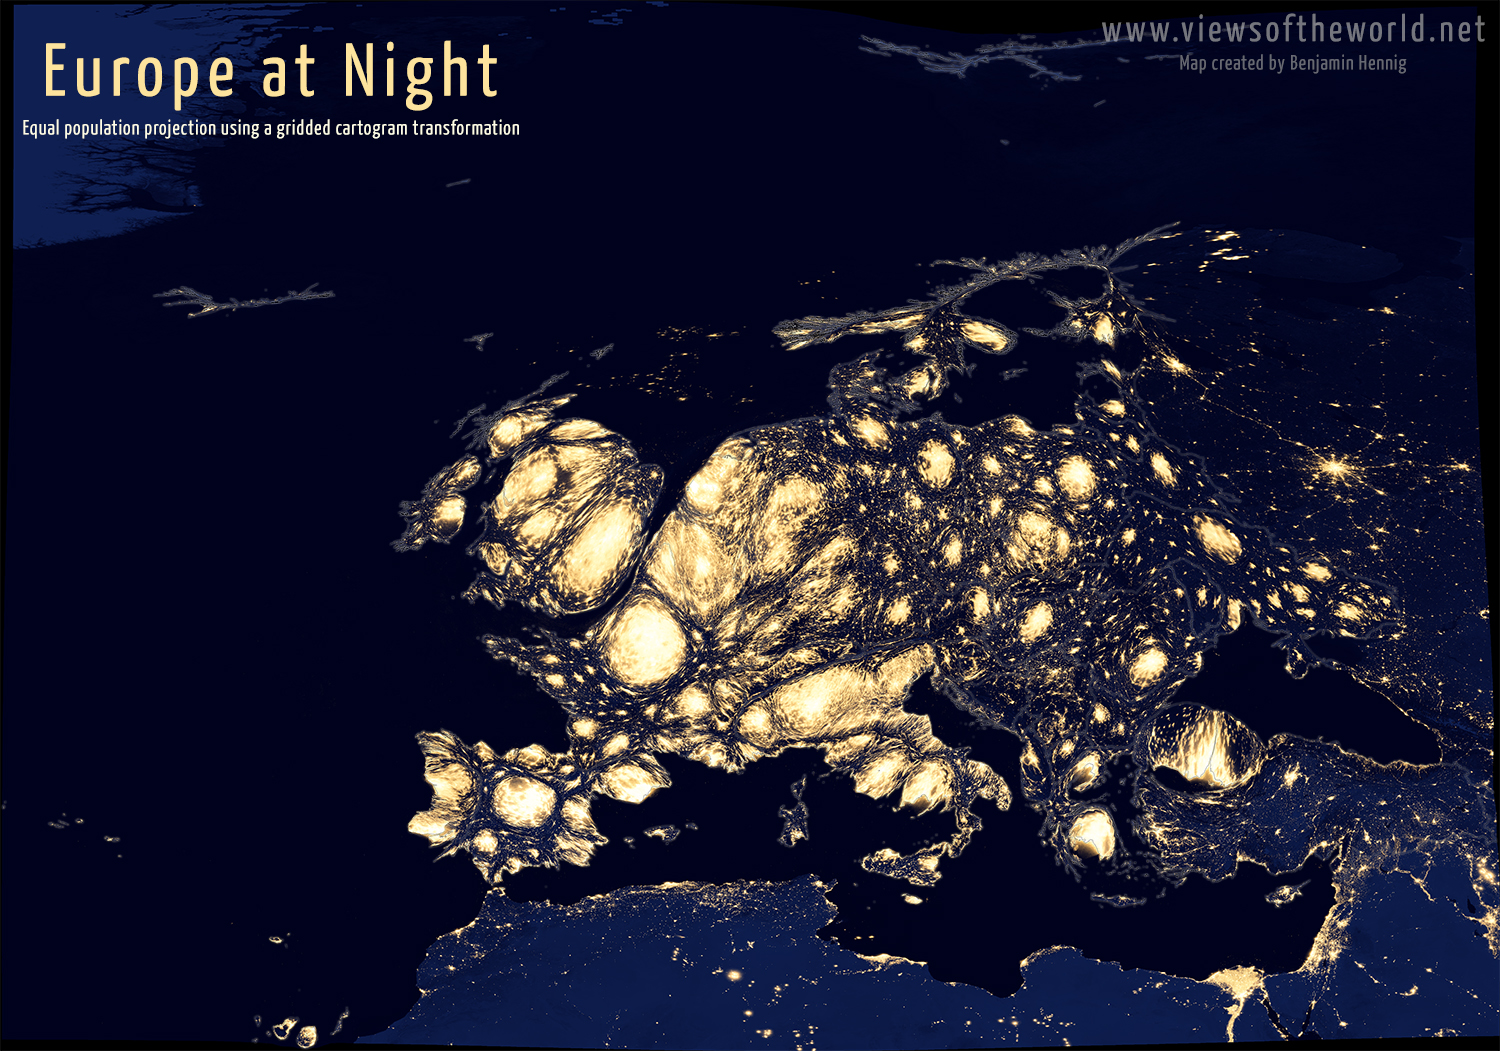 Equal population projection map of Europe at Night